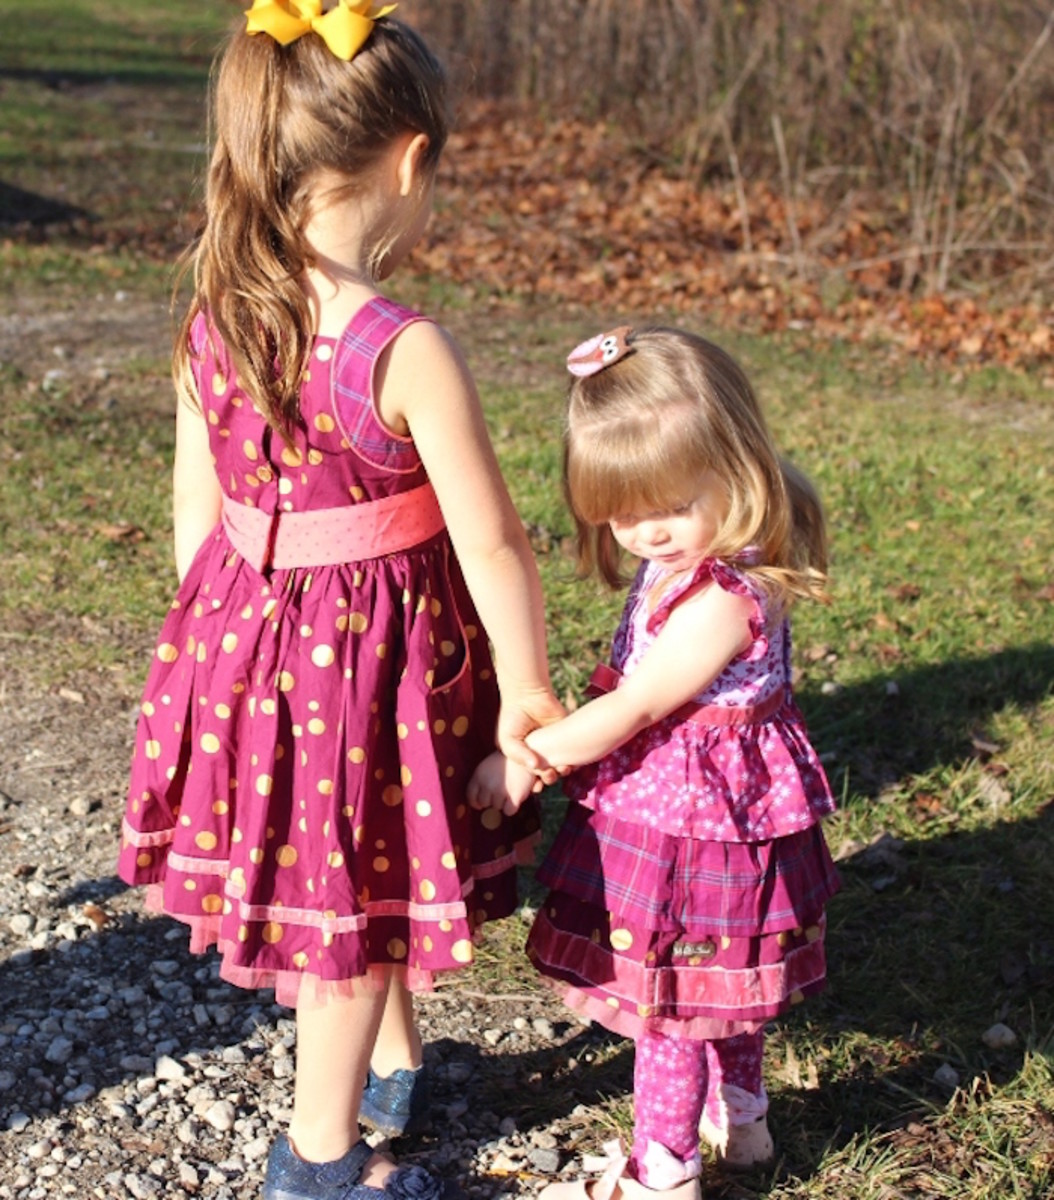 matilda jane clothing, mommy & me clothing, holiday clothing, clothing for girls